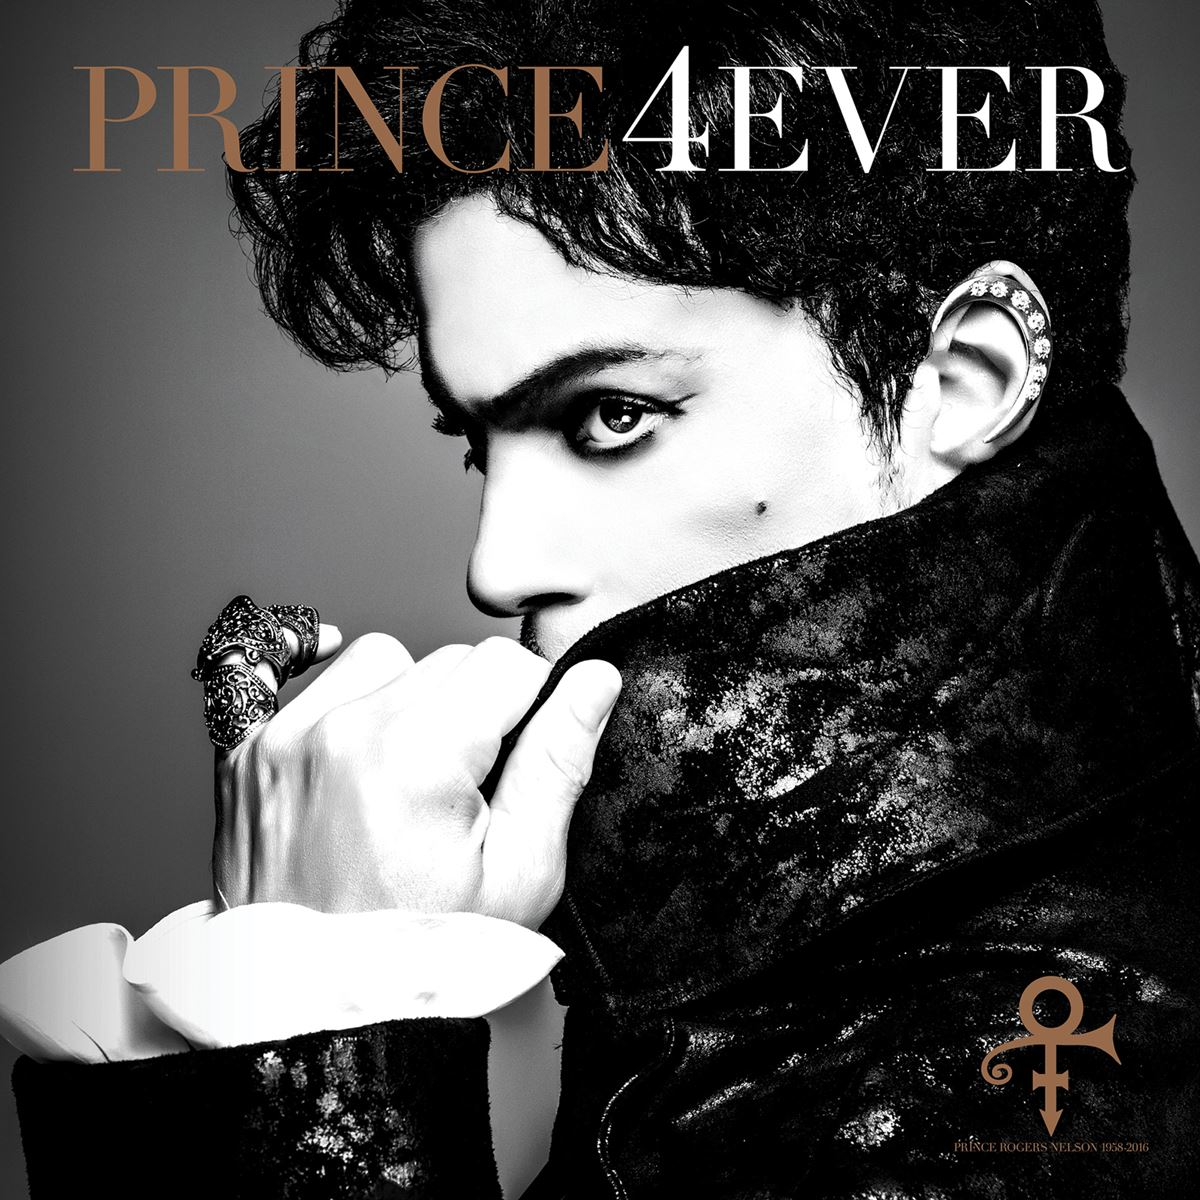 Cd prince4ever  - Sanborns